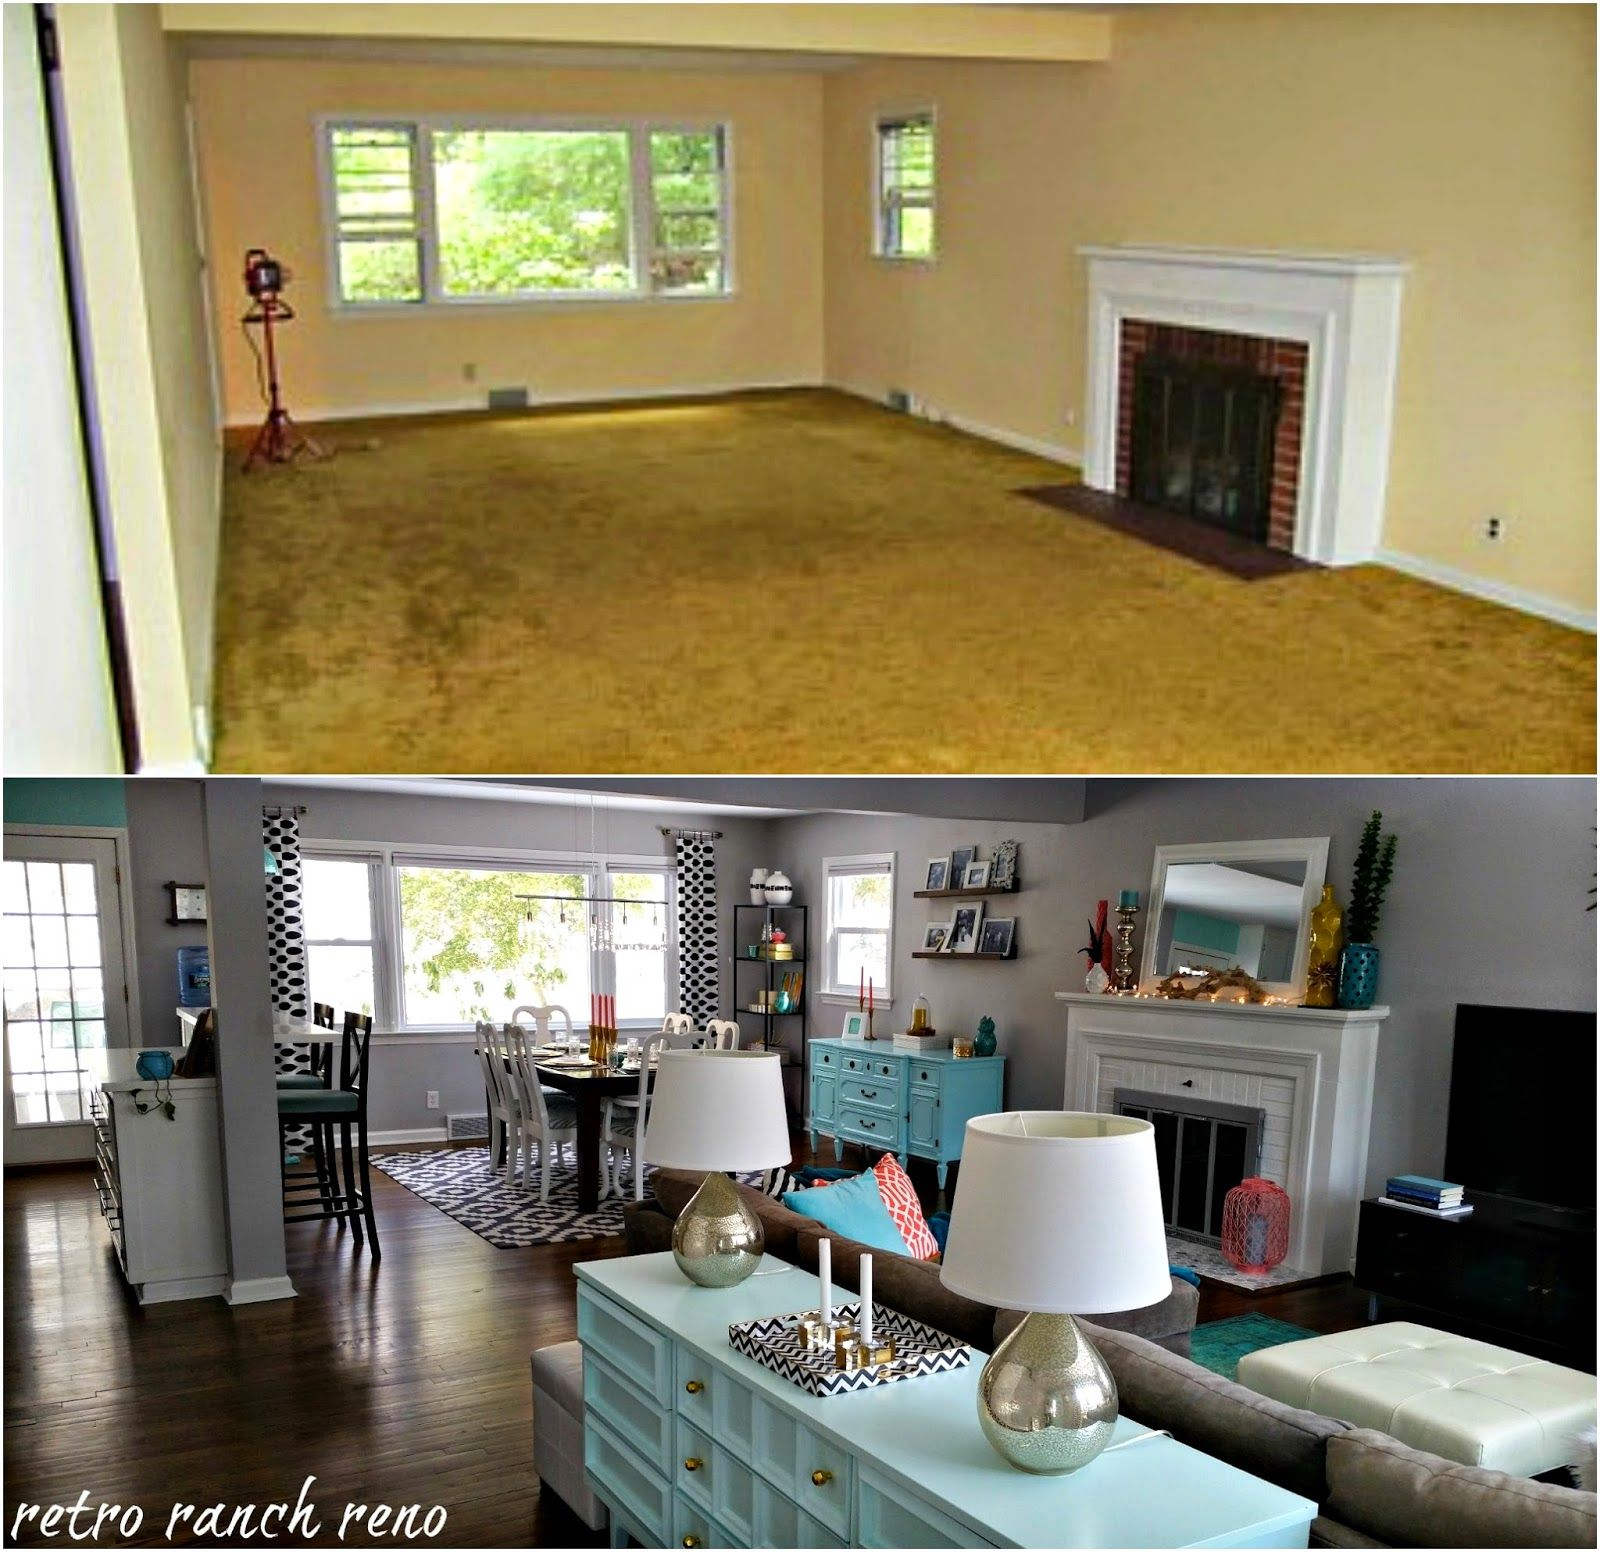 Retro Ranch Reno: Our Rancher: Before & After